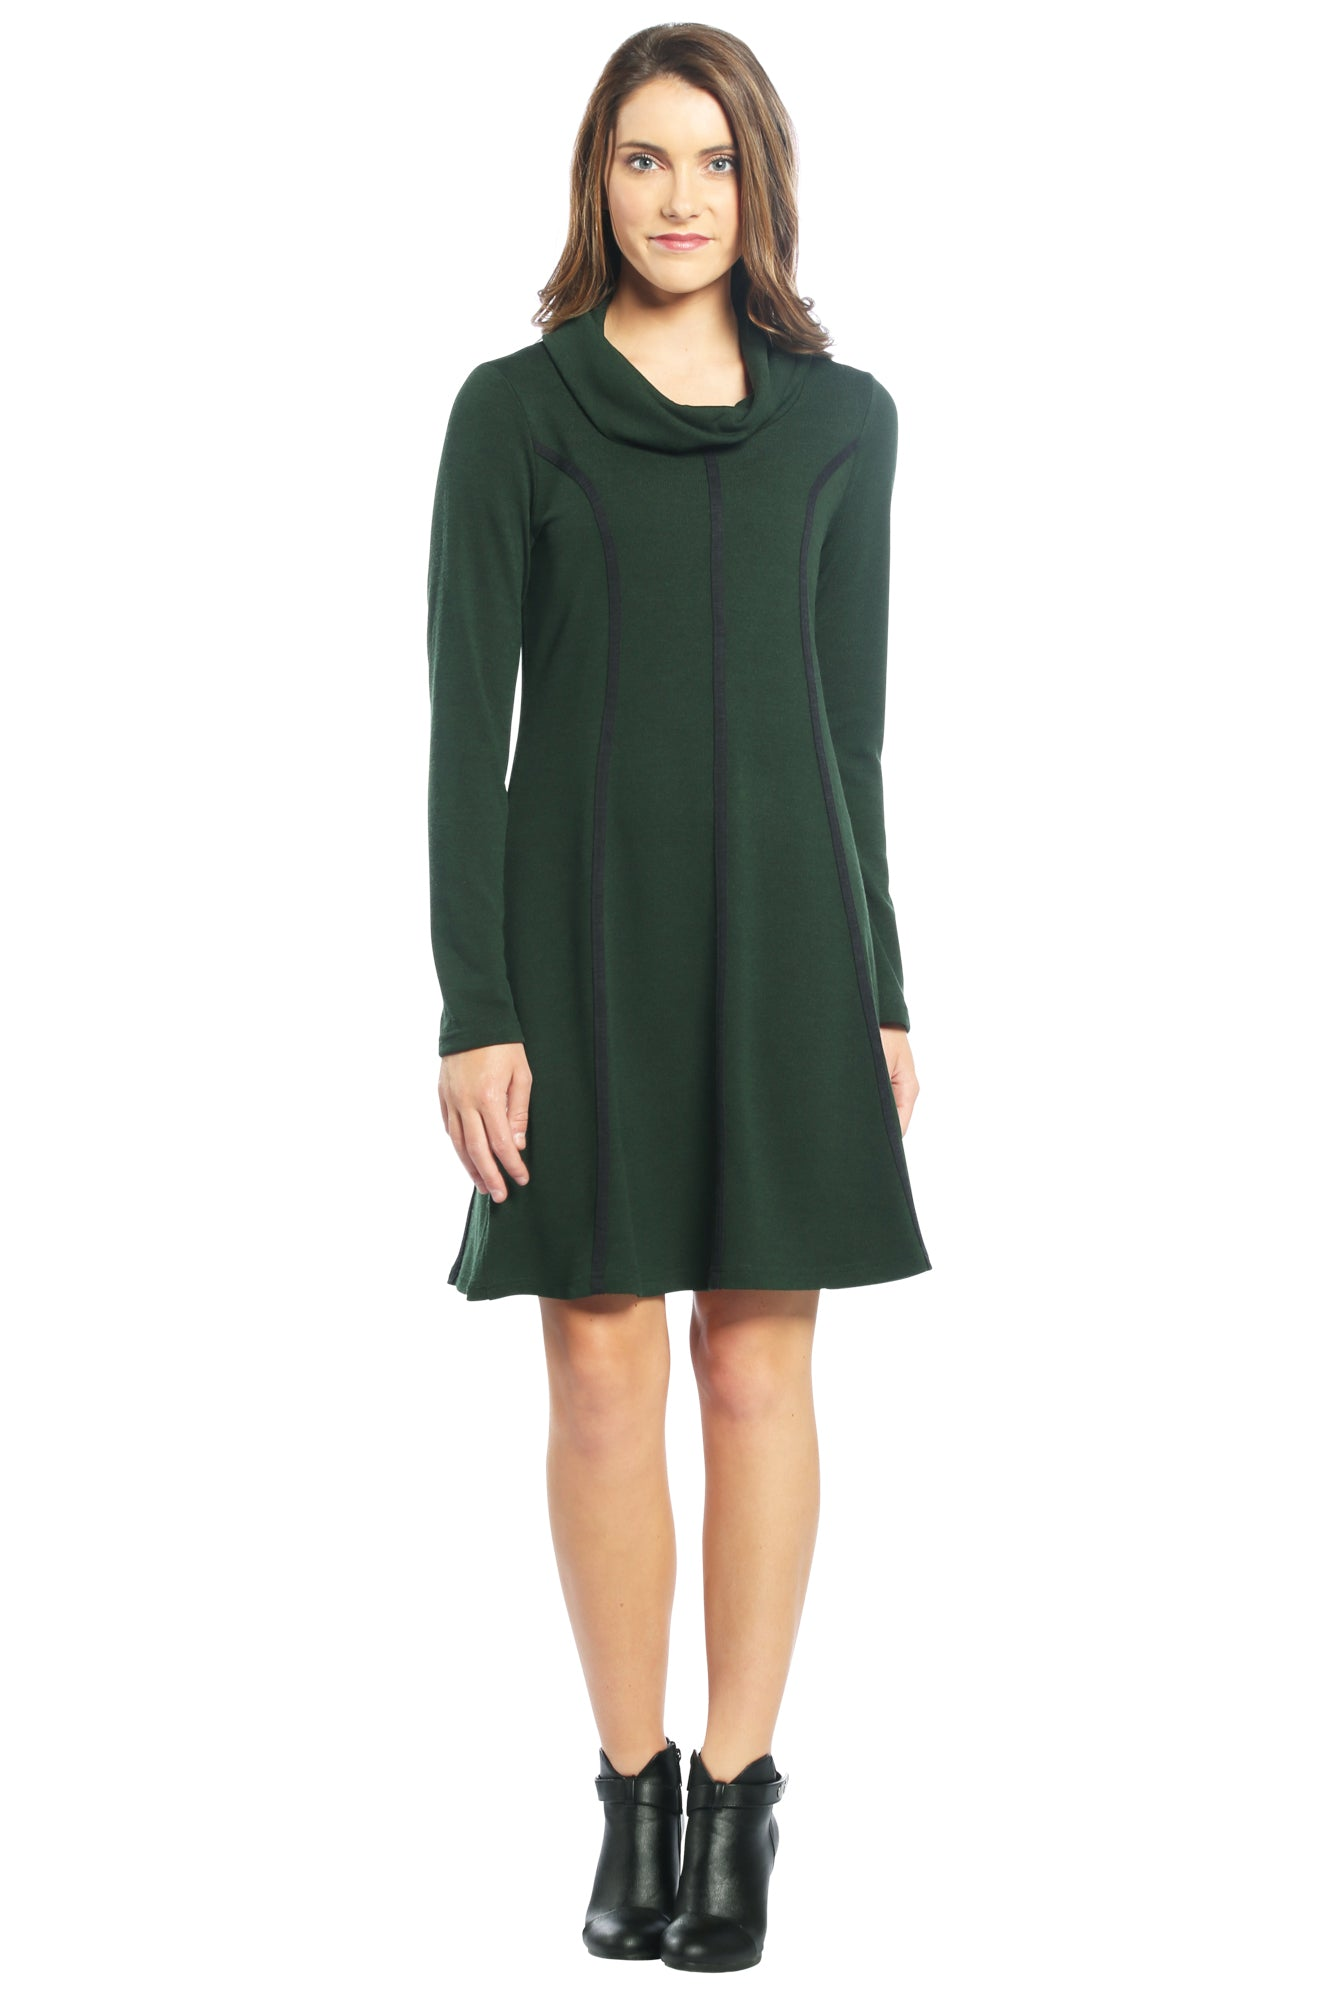 Green Sweater Dress